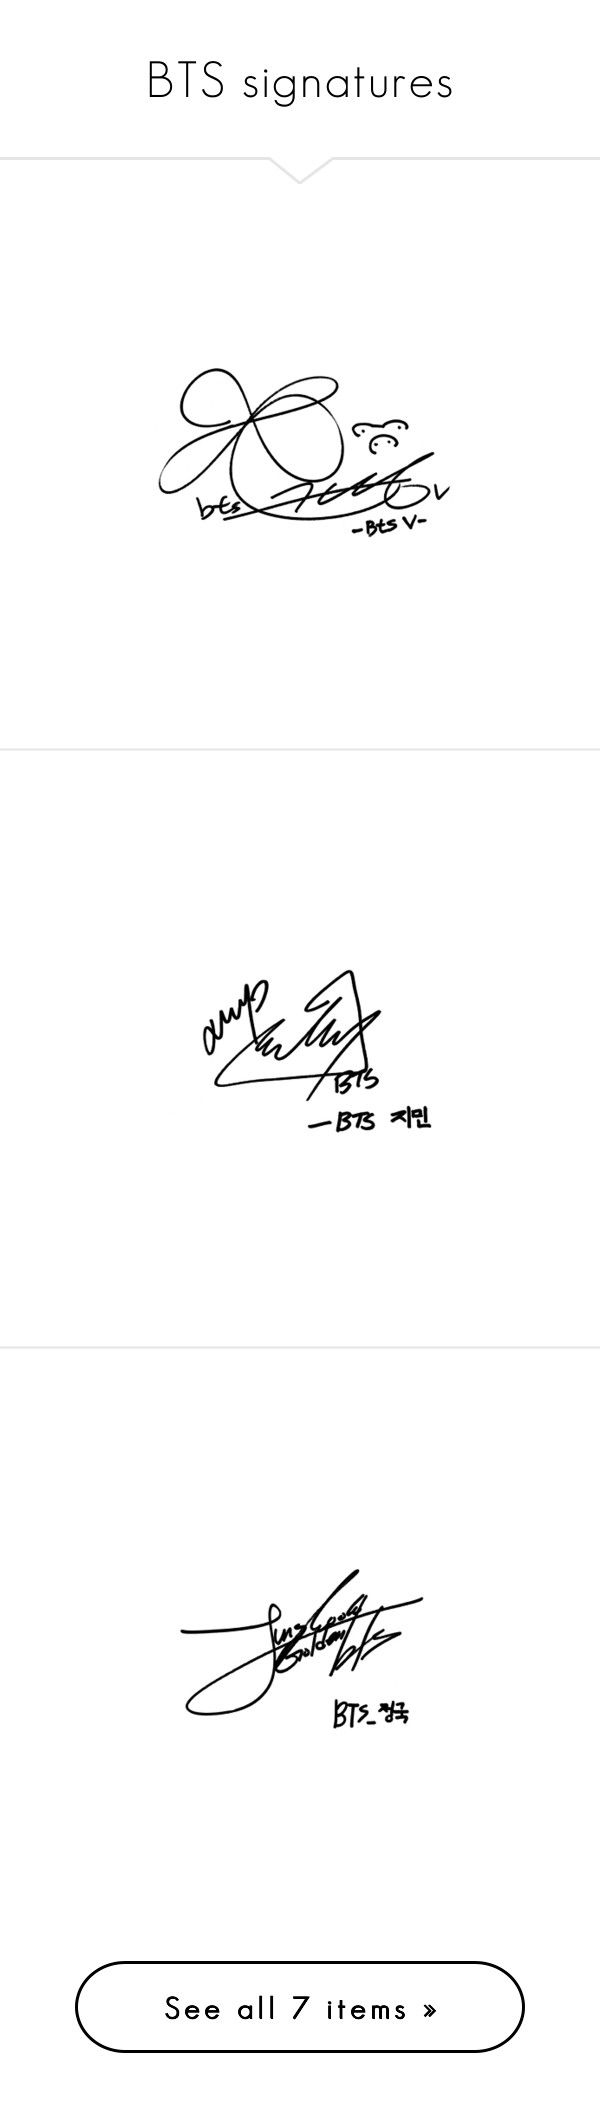 """""""BTS signatures"""" by sunshine-moonlight ❤ liked on Polyvore featuring bts, fillers - text, text fillers and kpop"""